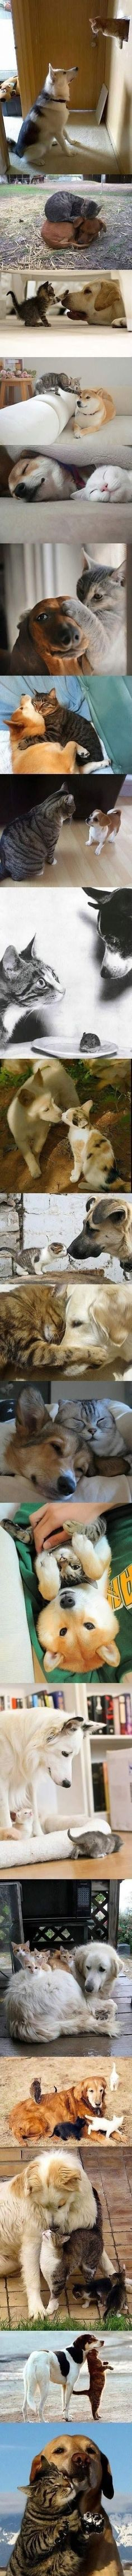 best dogs u cats images on pinterest in fluffy animals